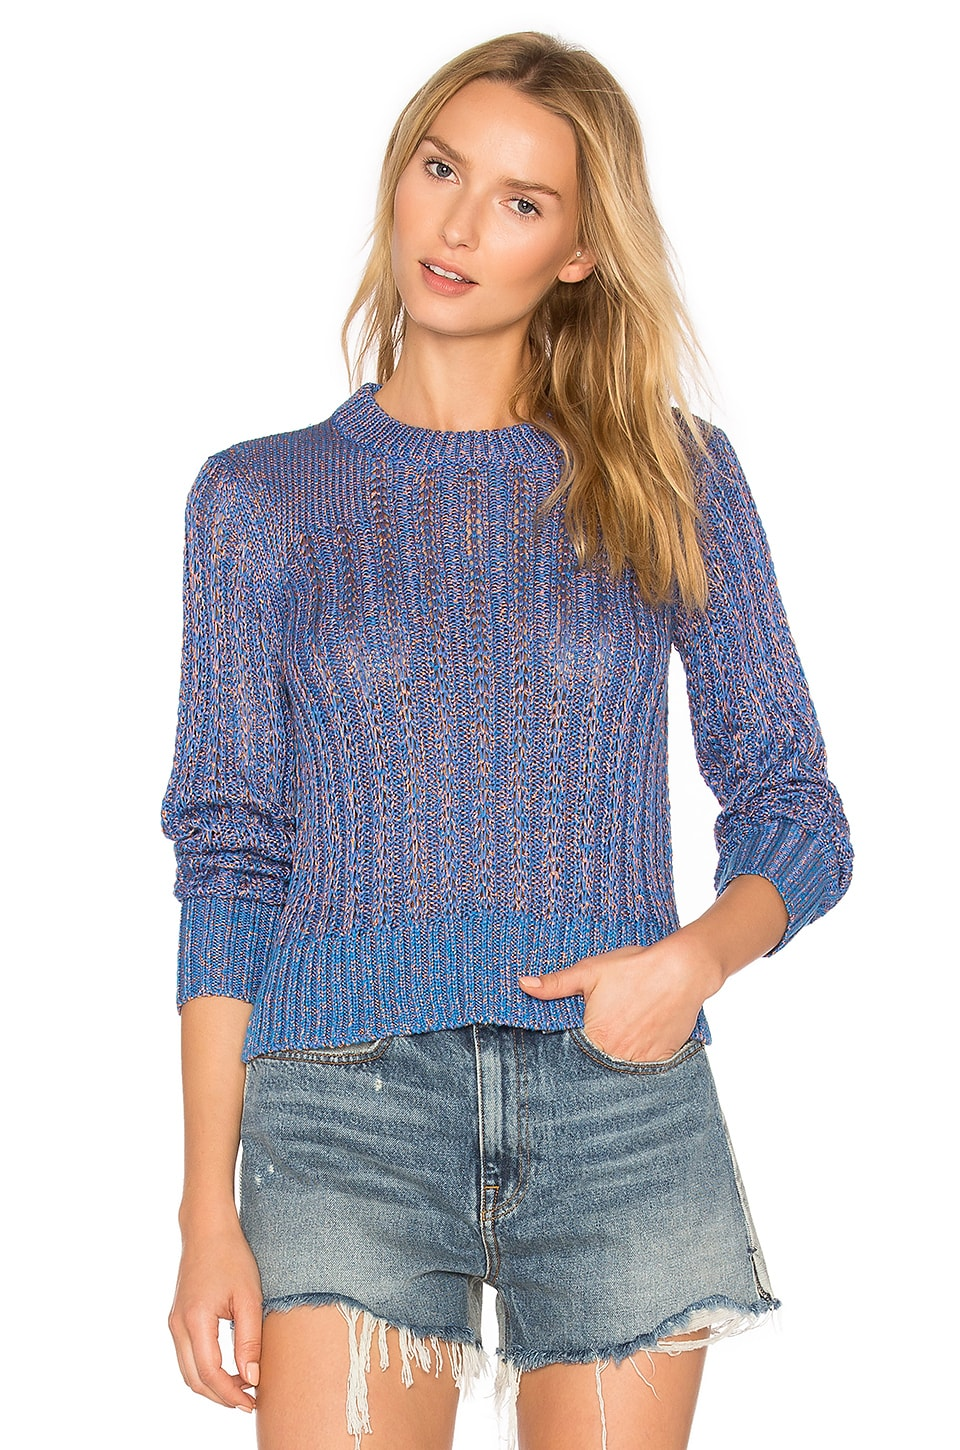 Adira Sweater by Rag & Bone